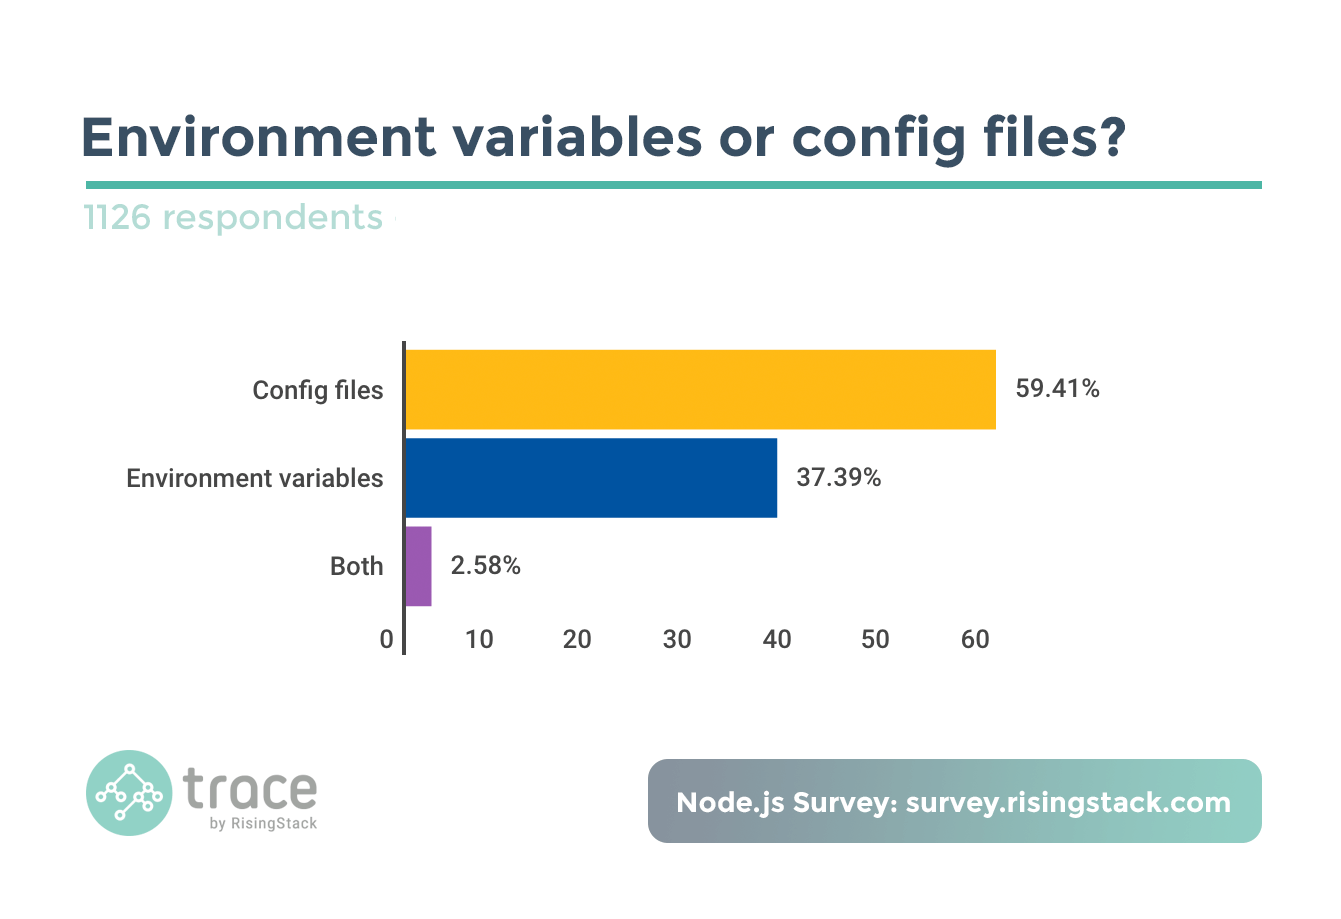 Node.js Survey - Environment variables or config files? Config files wins.